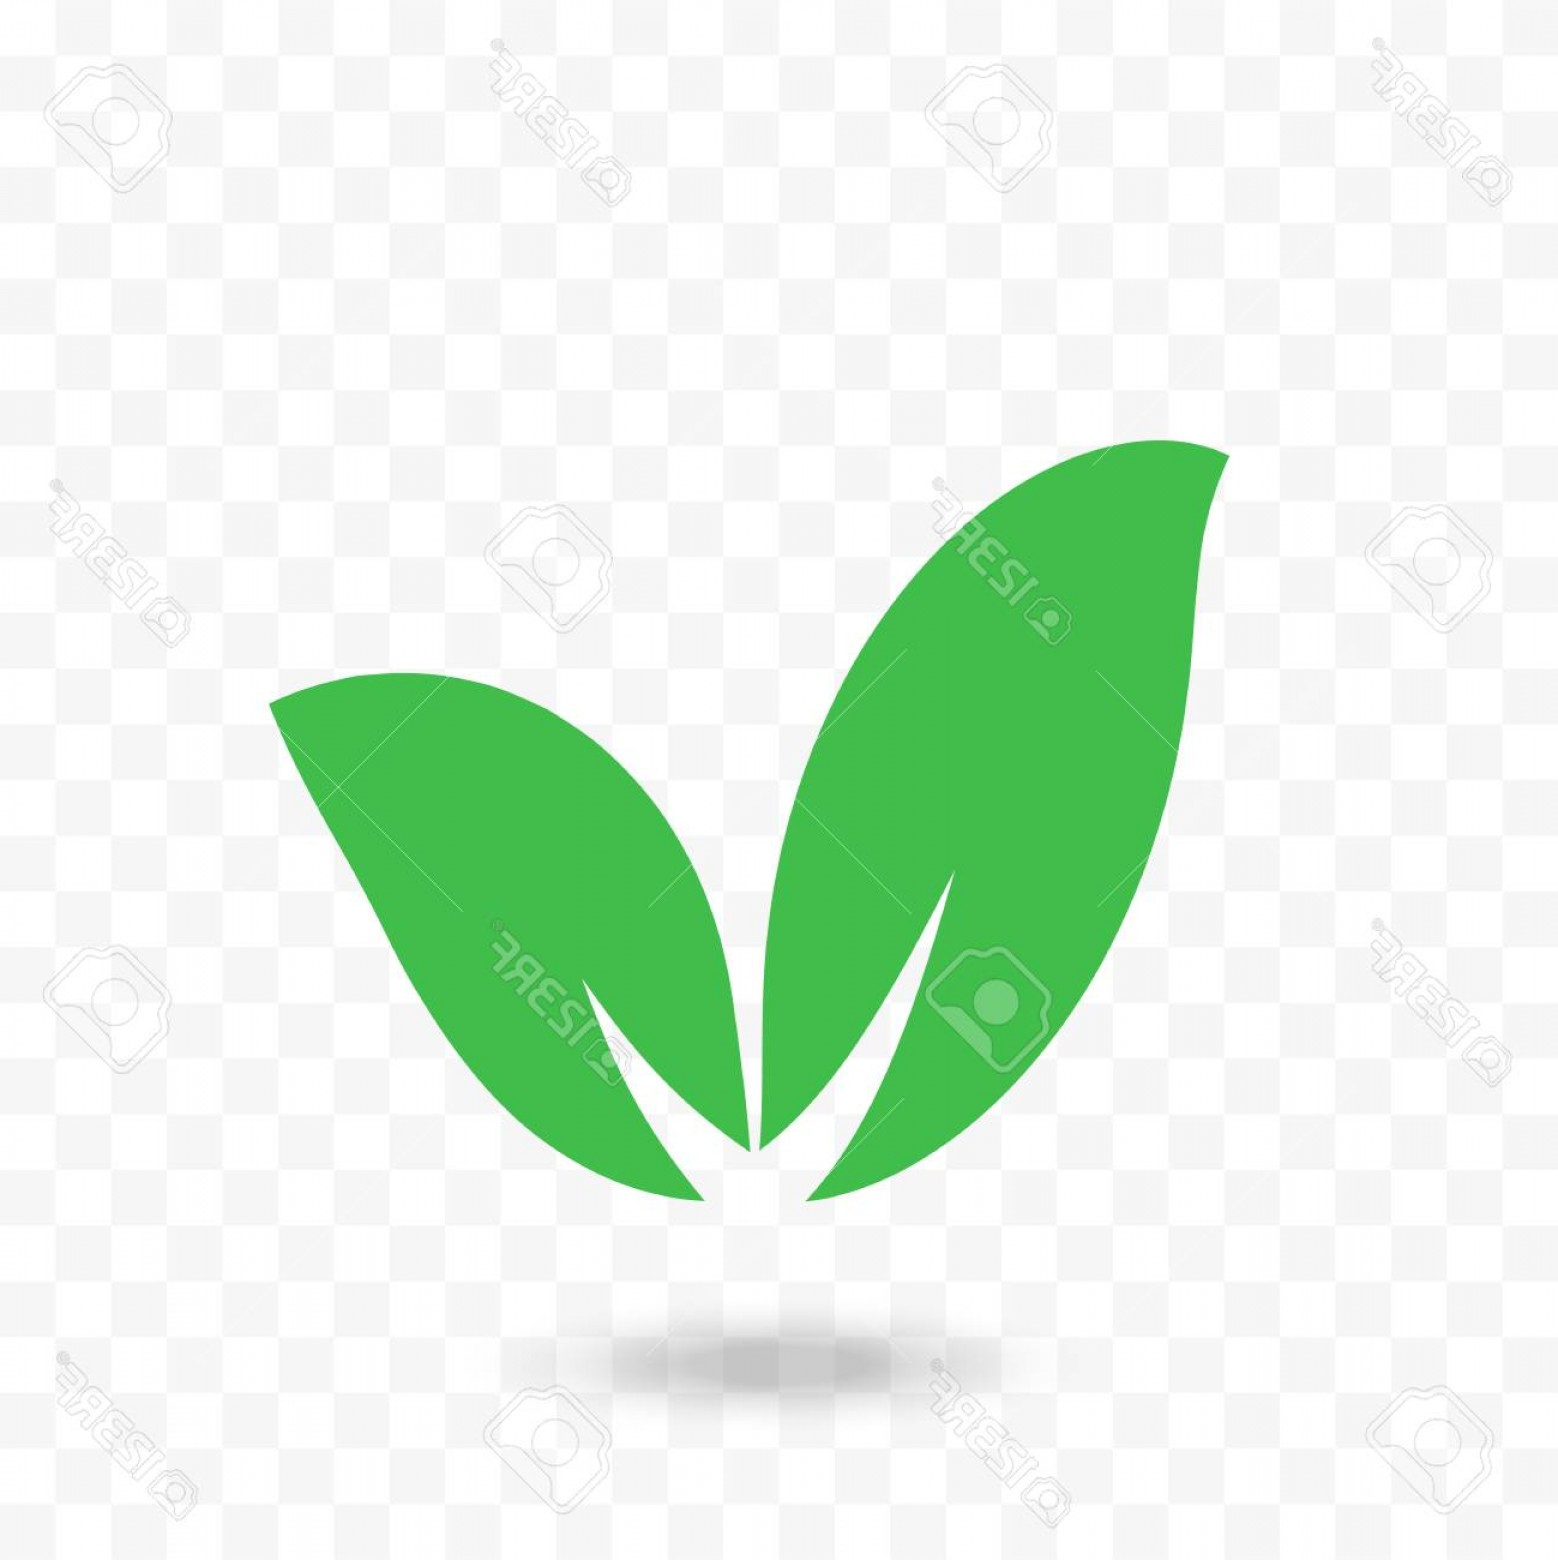 Leaf Vector Logo: Photostock Vector Leaf Vector Logo On Transparent Background Isolated Green Leaf Icon With Shadow For Eco Bio Or Organ